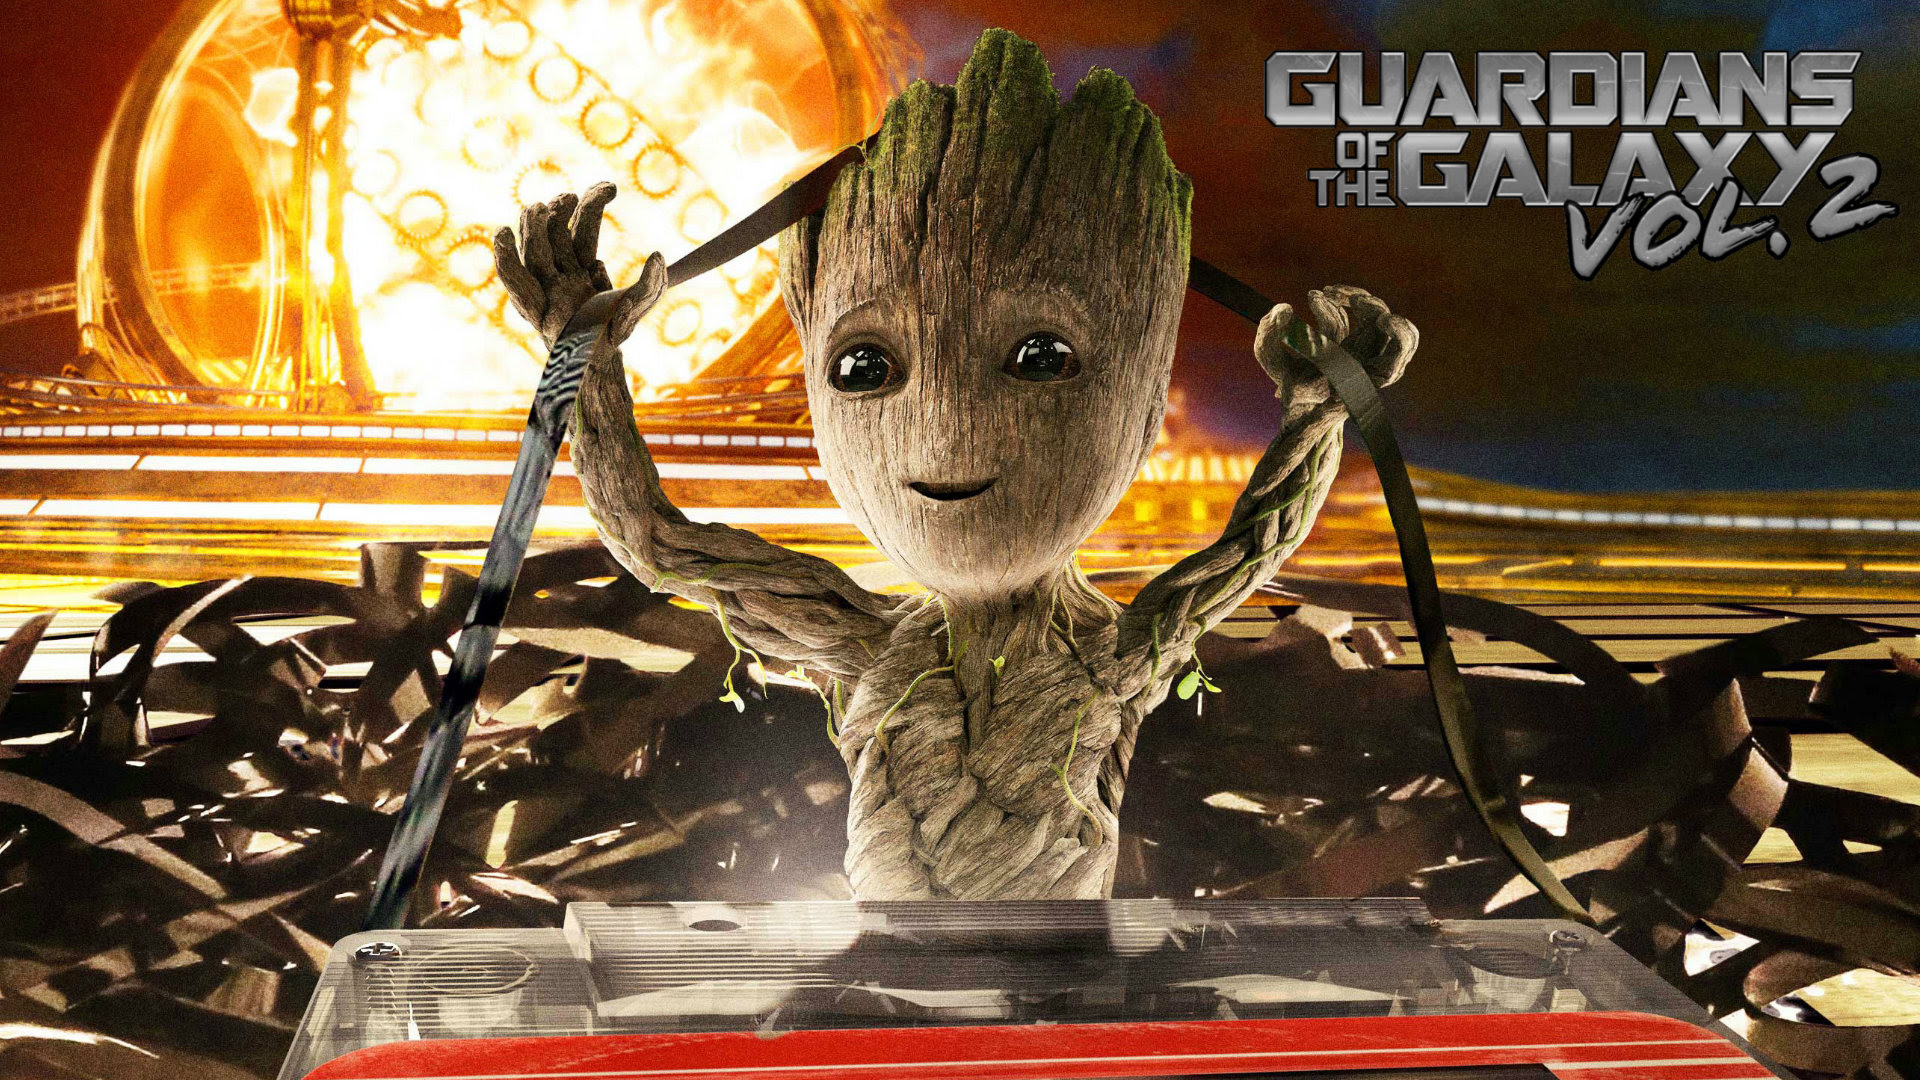 Groot Guardians Of The Galaxy Vol 2 2017 Guardians Of The